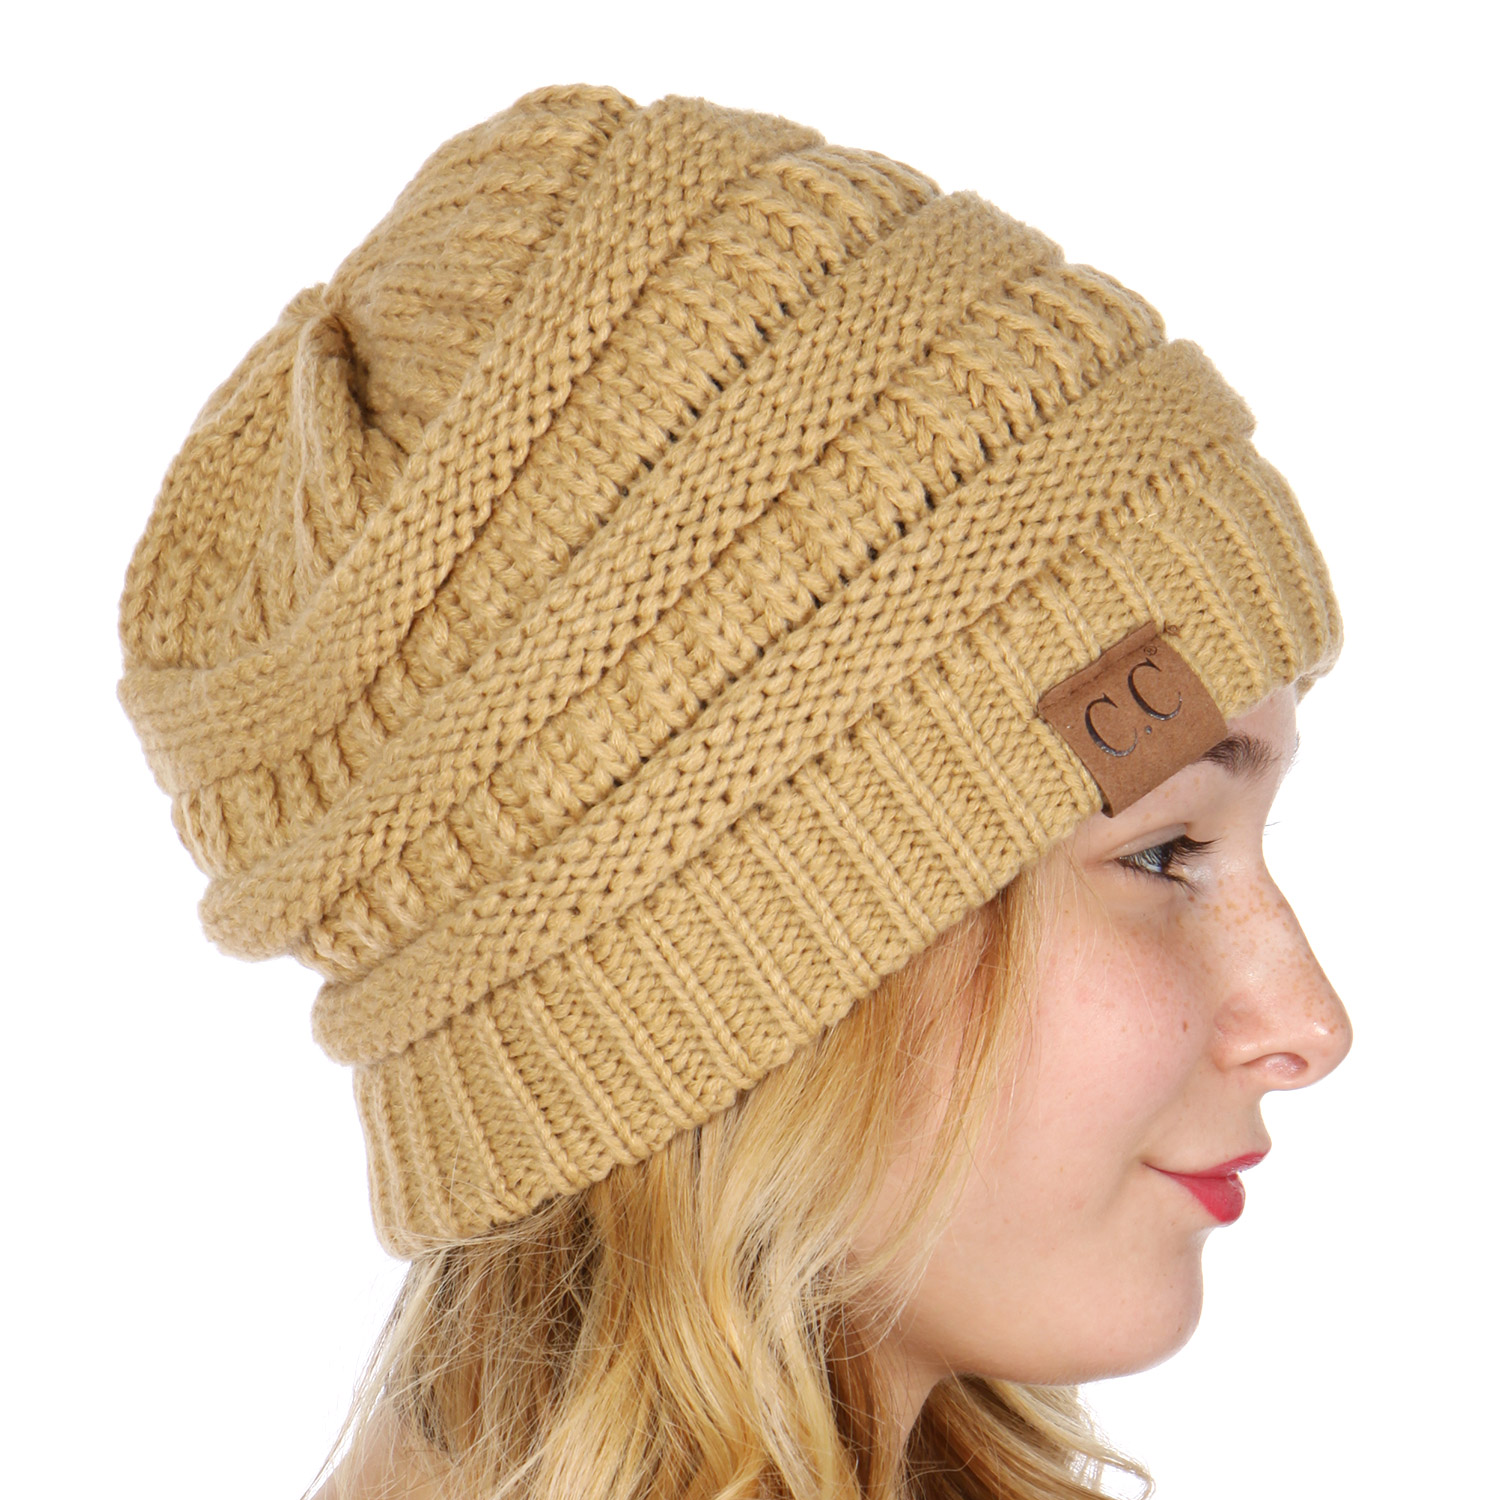 F01 Serenita C.C Oversized solid thick knit beanie hat Camel 85fbba3377d